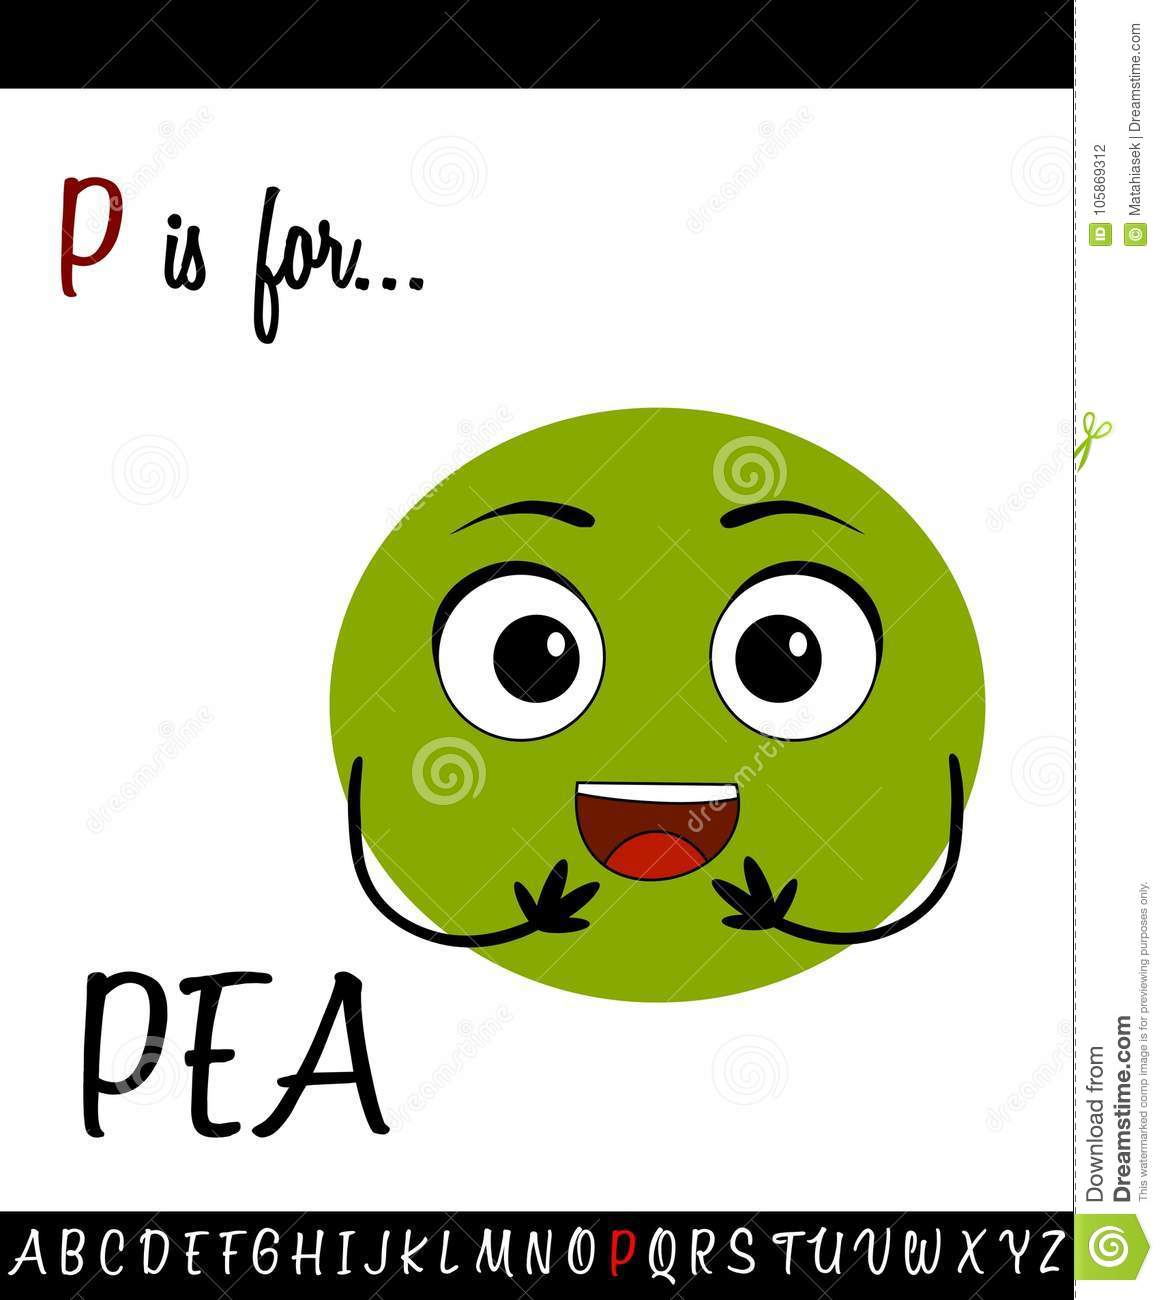 Illustrated Vocabulary Worksheet Card With Cartoon Pea